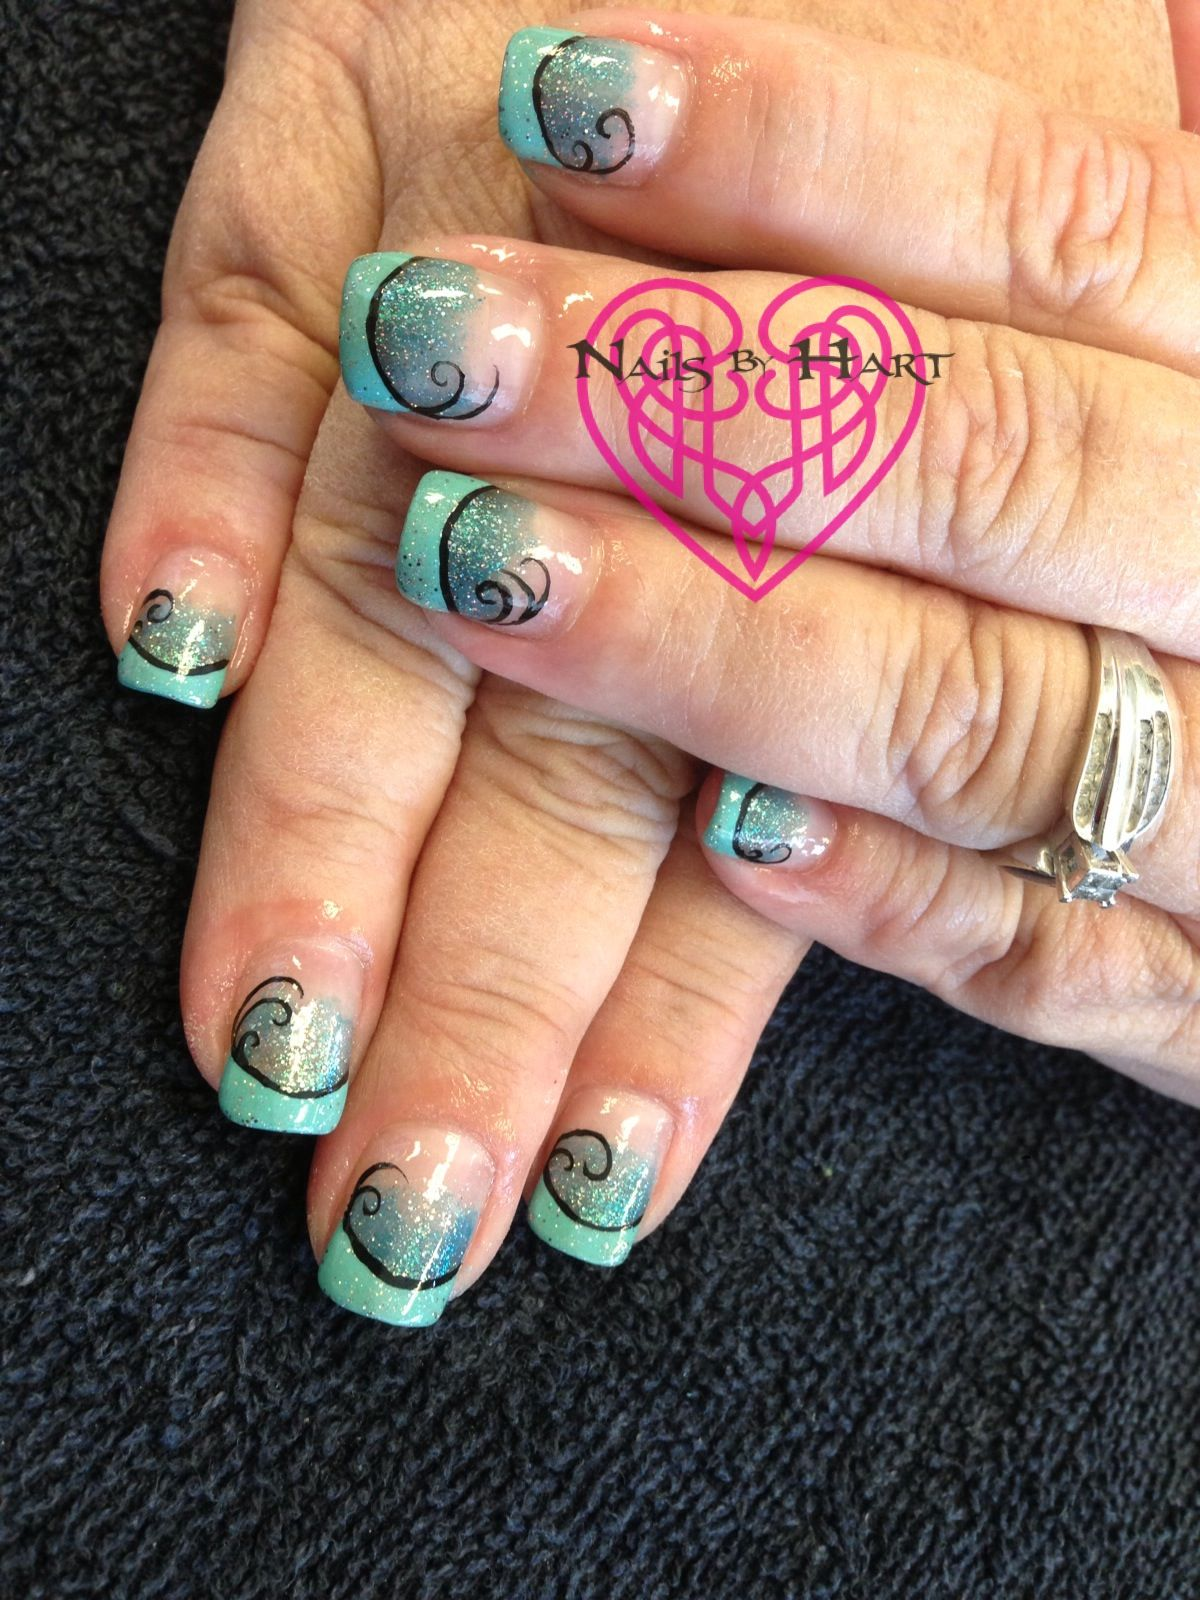 Nails by Katie Hart Eugene, Or 541-730-2662 | Nails by Hart | Pinterest